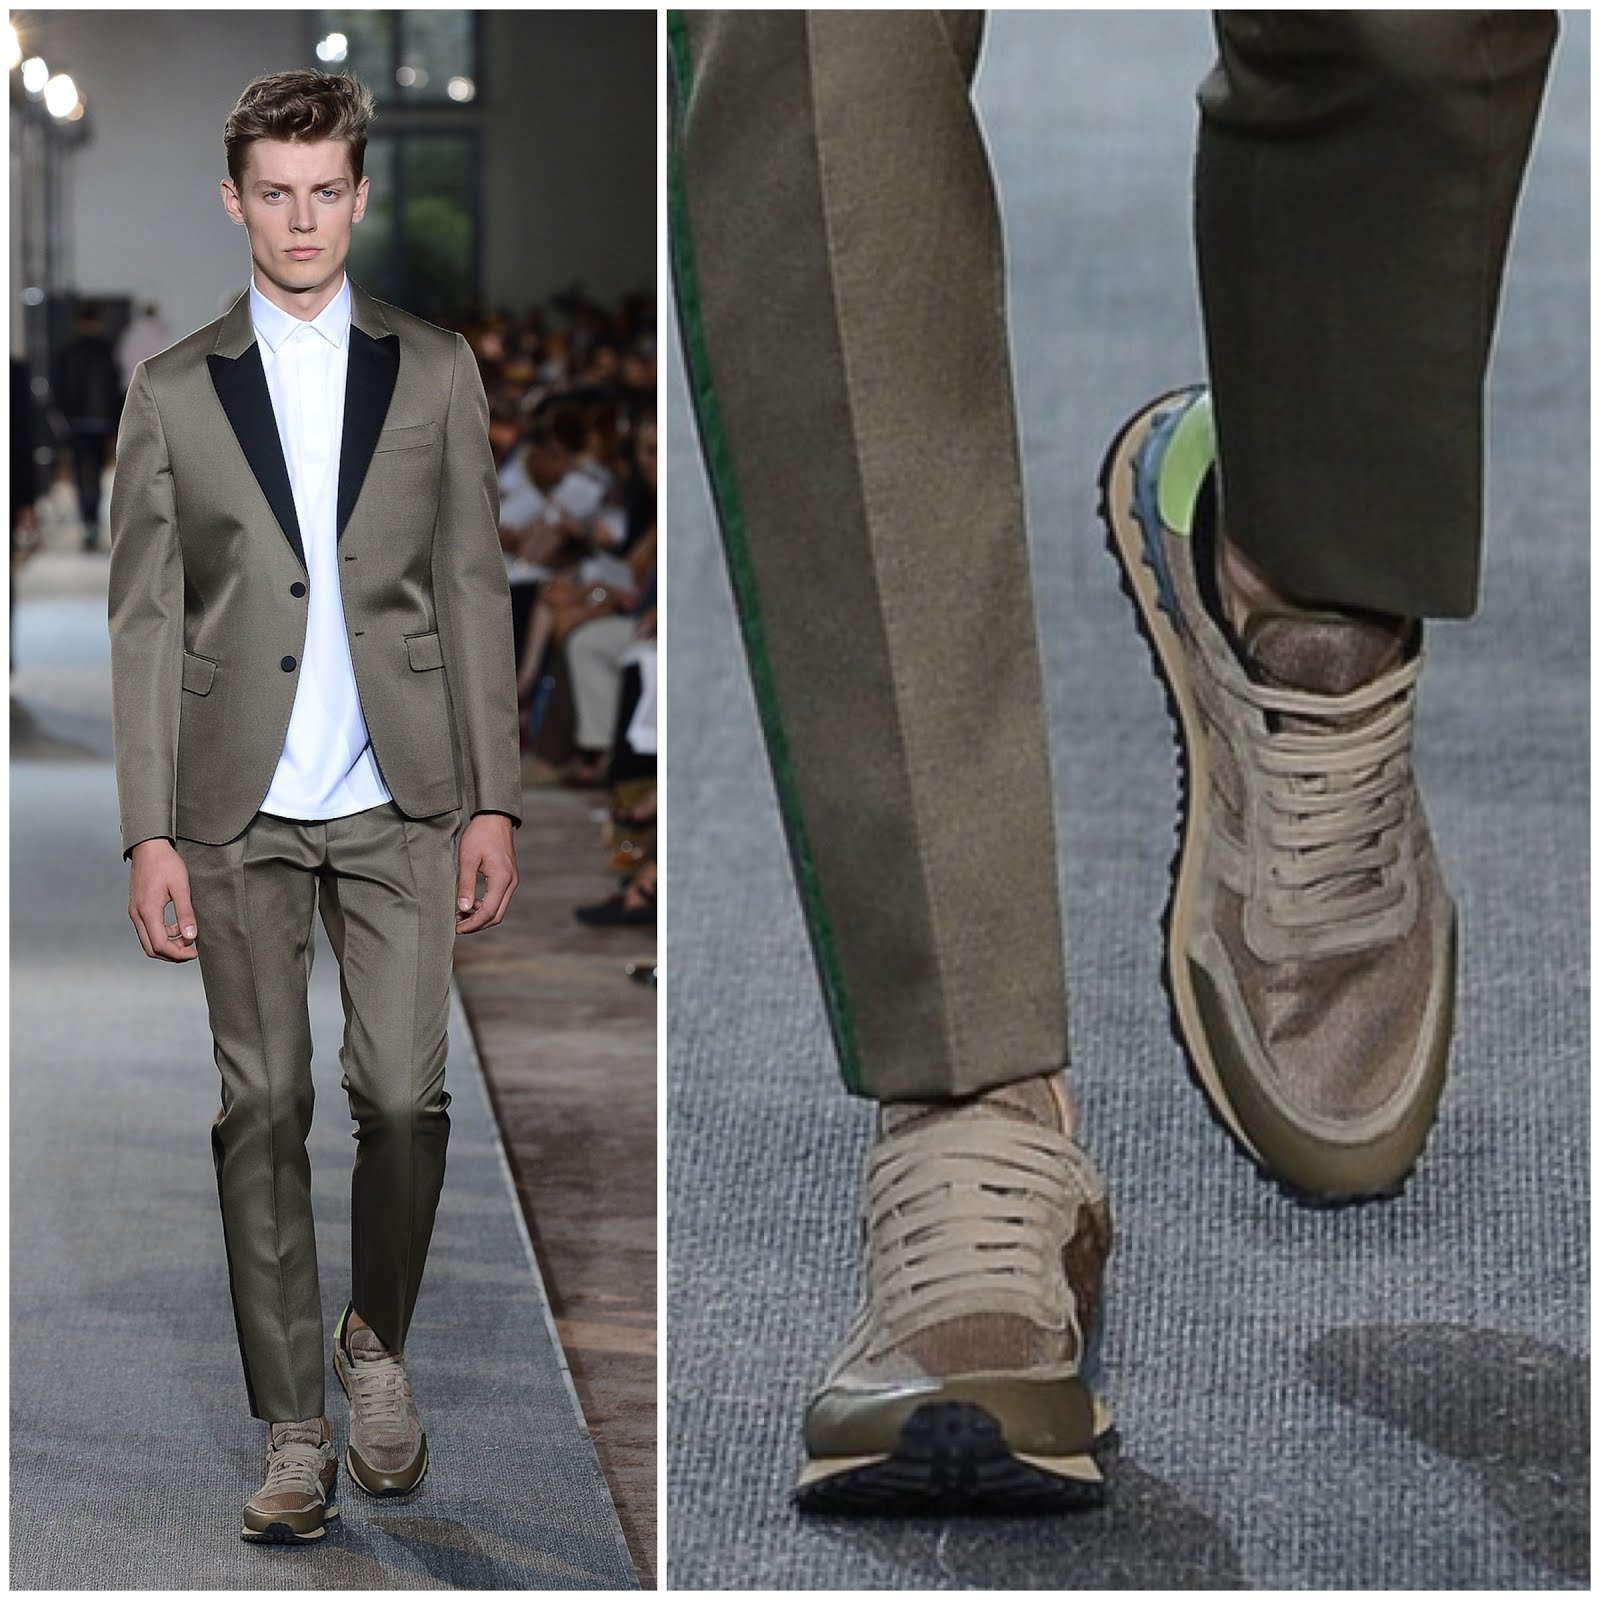 00O00 Menswear Blog Kevin Cheng [] in Valentino - Valentino Menswear Fall Winter 2013, Paris. Kevin Cheng [] wore Valentino menswear Spring Summer 2013 camouflauge sneakers available from MatchesFashion.com